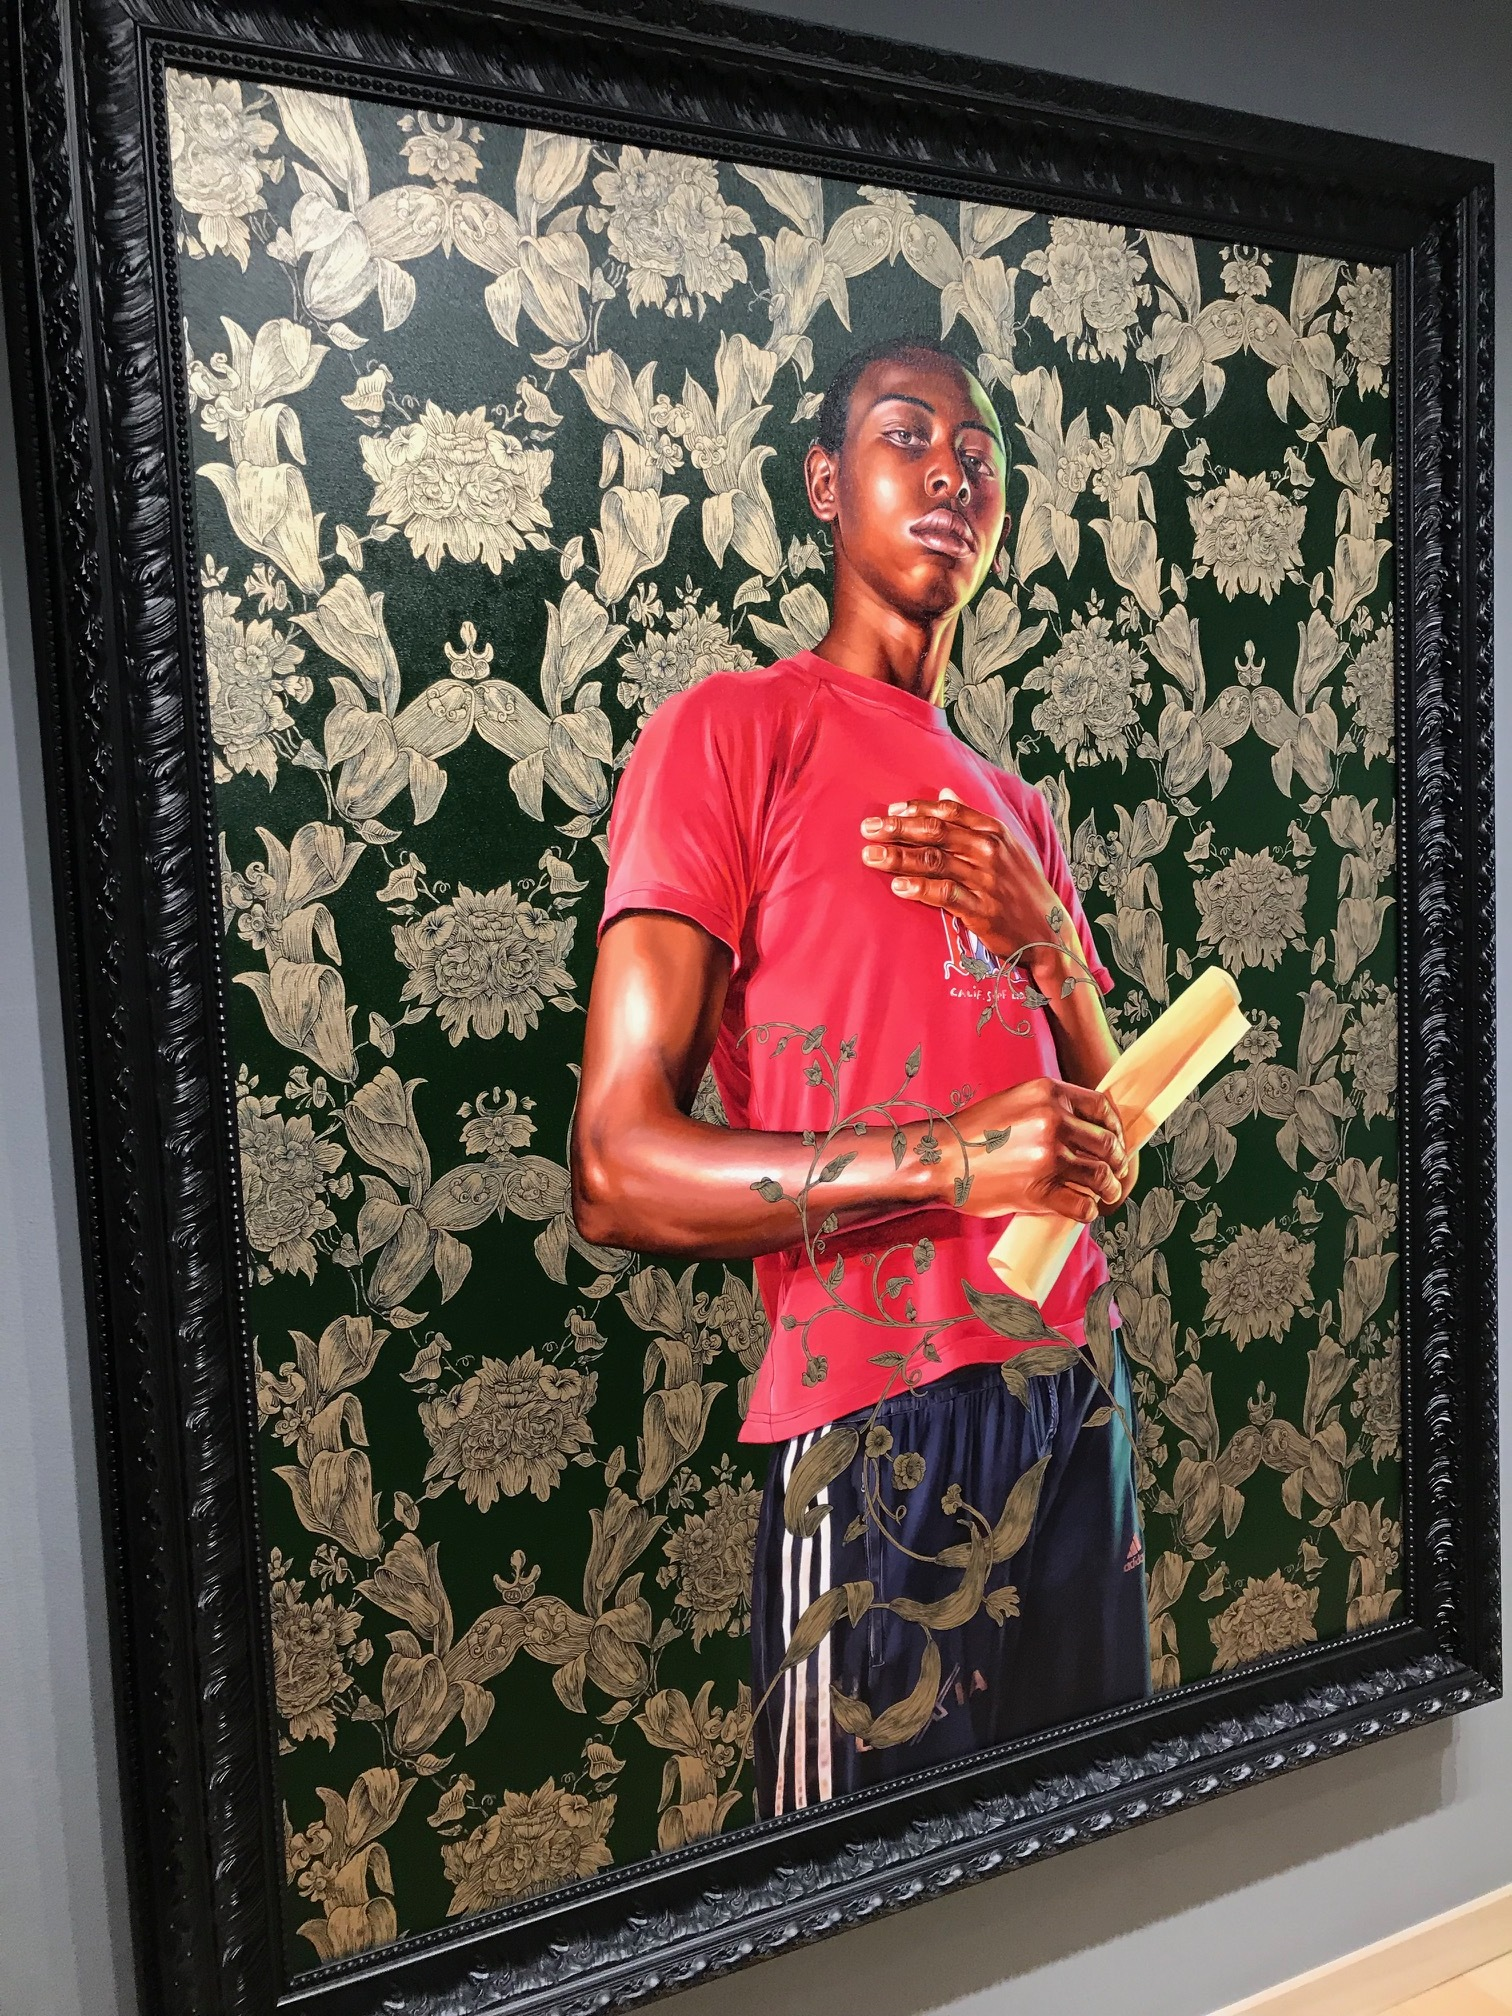 Kehinde Wiley Portrait of Dacdjo Ndie Joseph at Berggruen Gallery